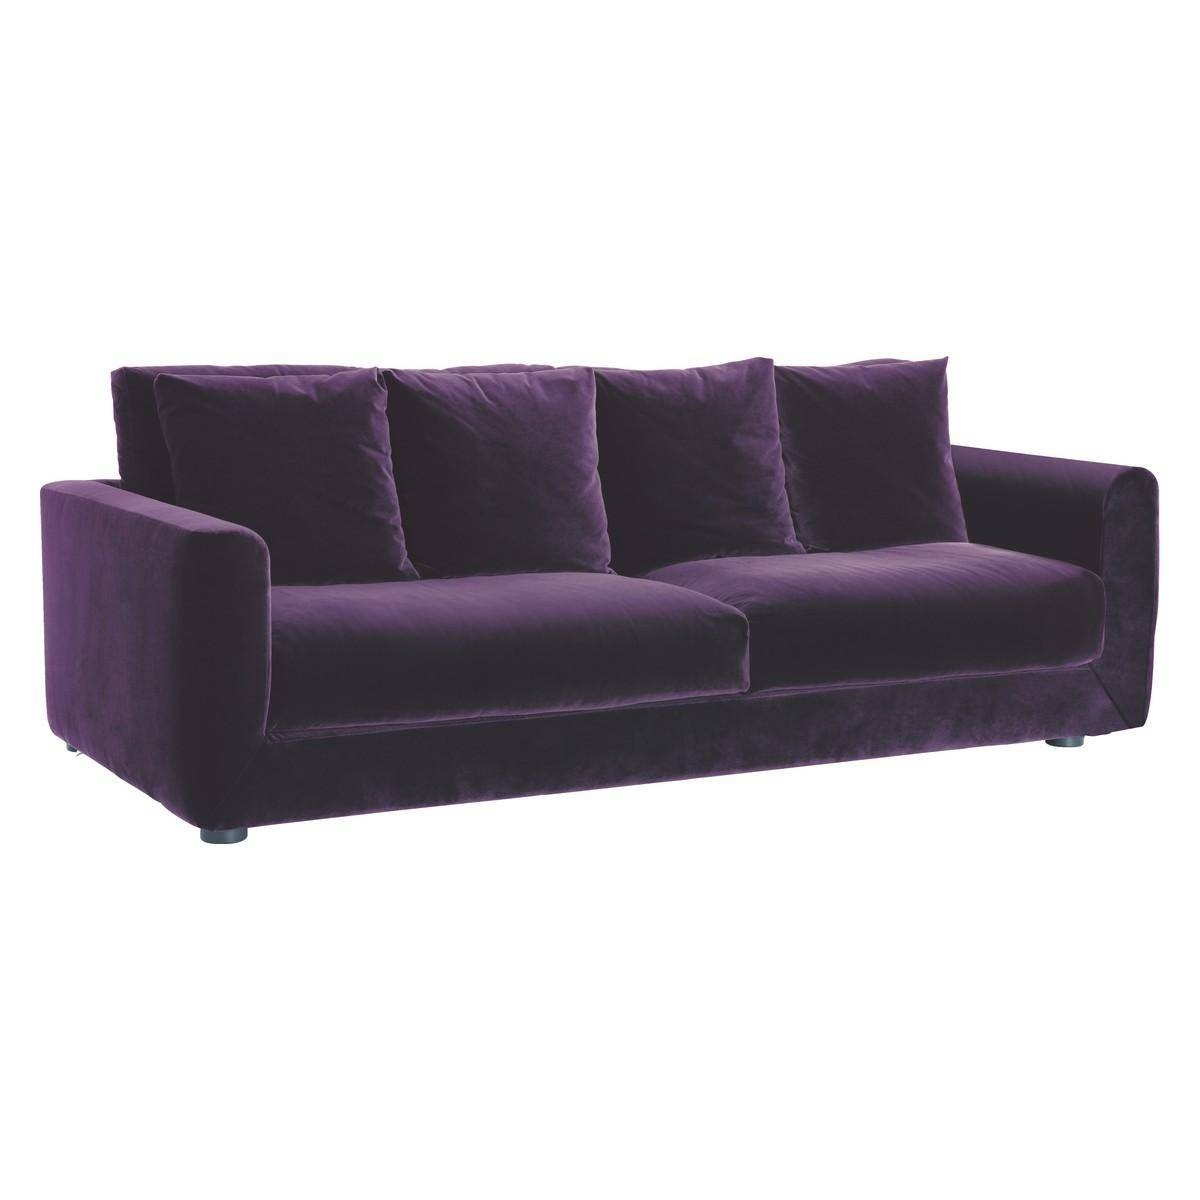 20 Collection Of Barrister Velvet Sofas | Sofa Ideas intended for Barrister Velvet Sofas (Image 2 of 15)